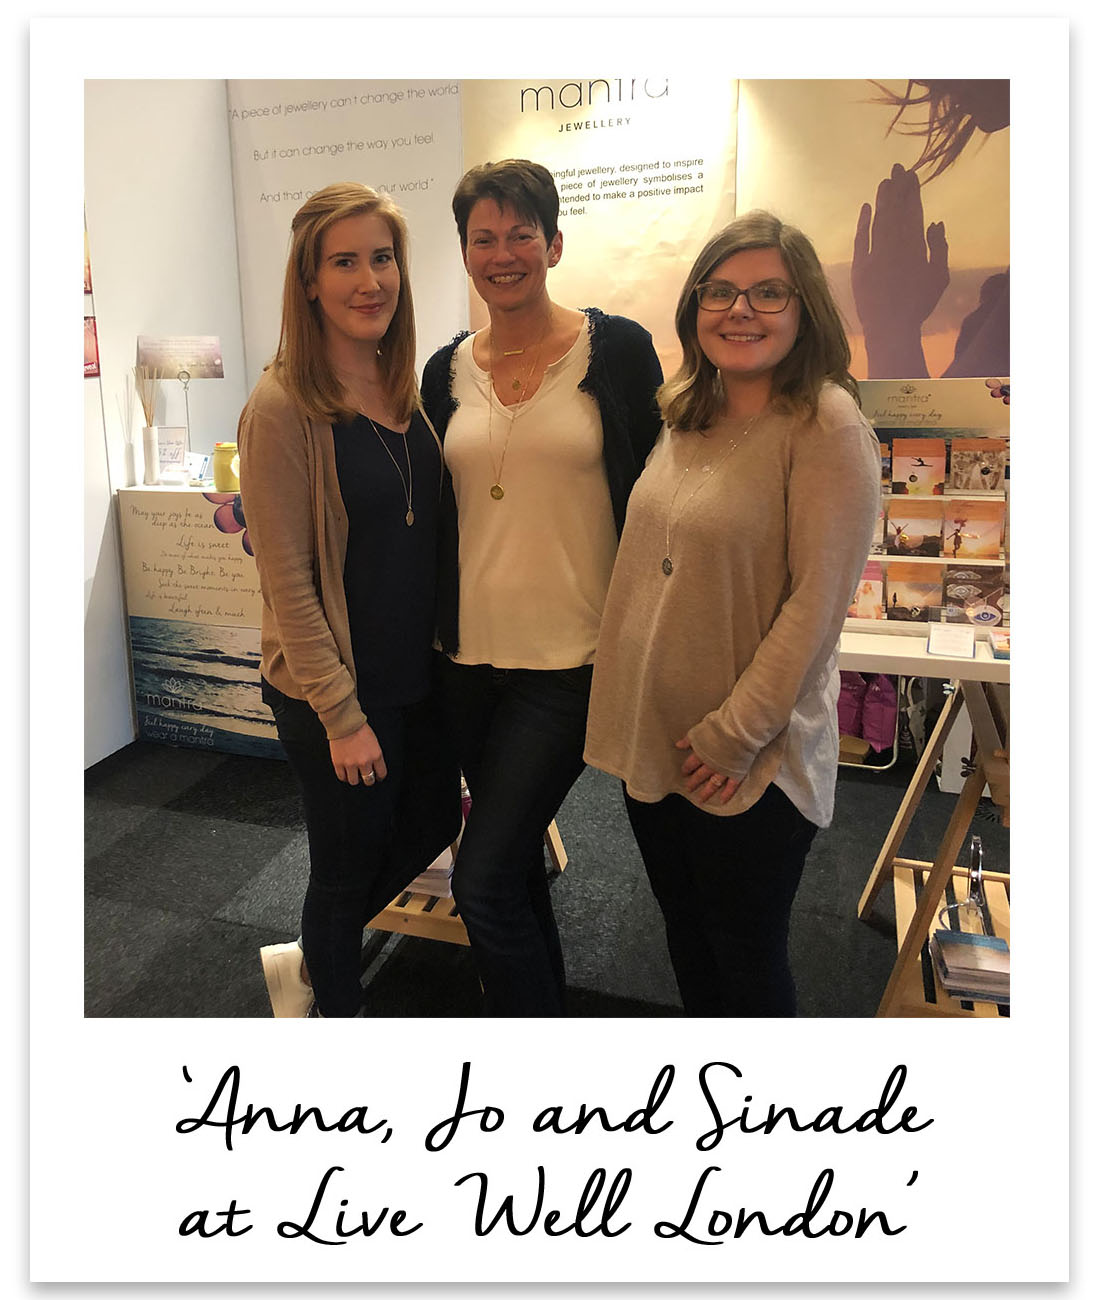 Anna, Jo and Sinade at Live Well London